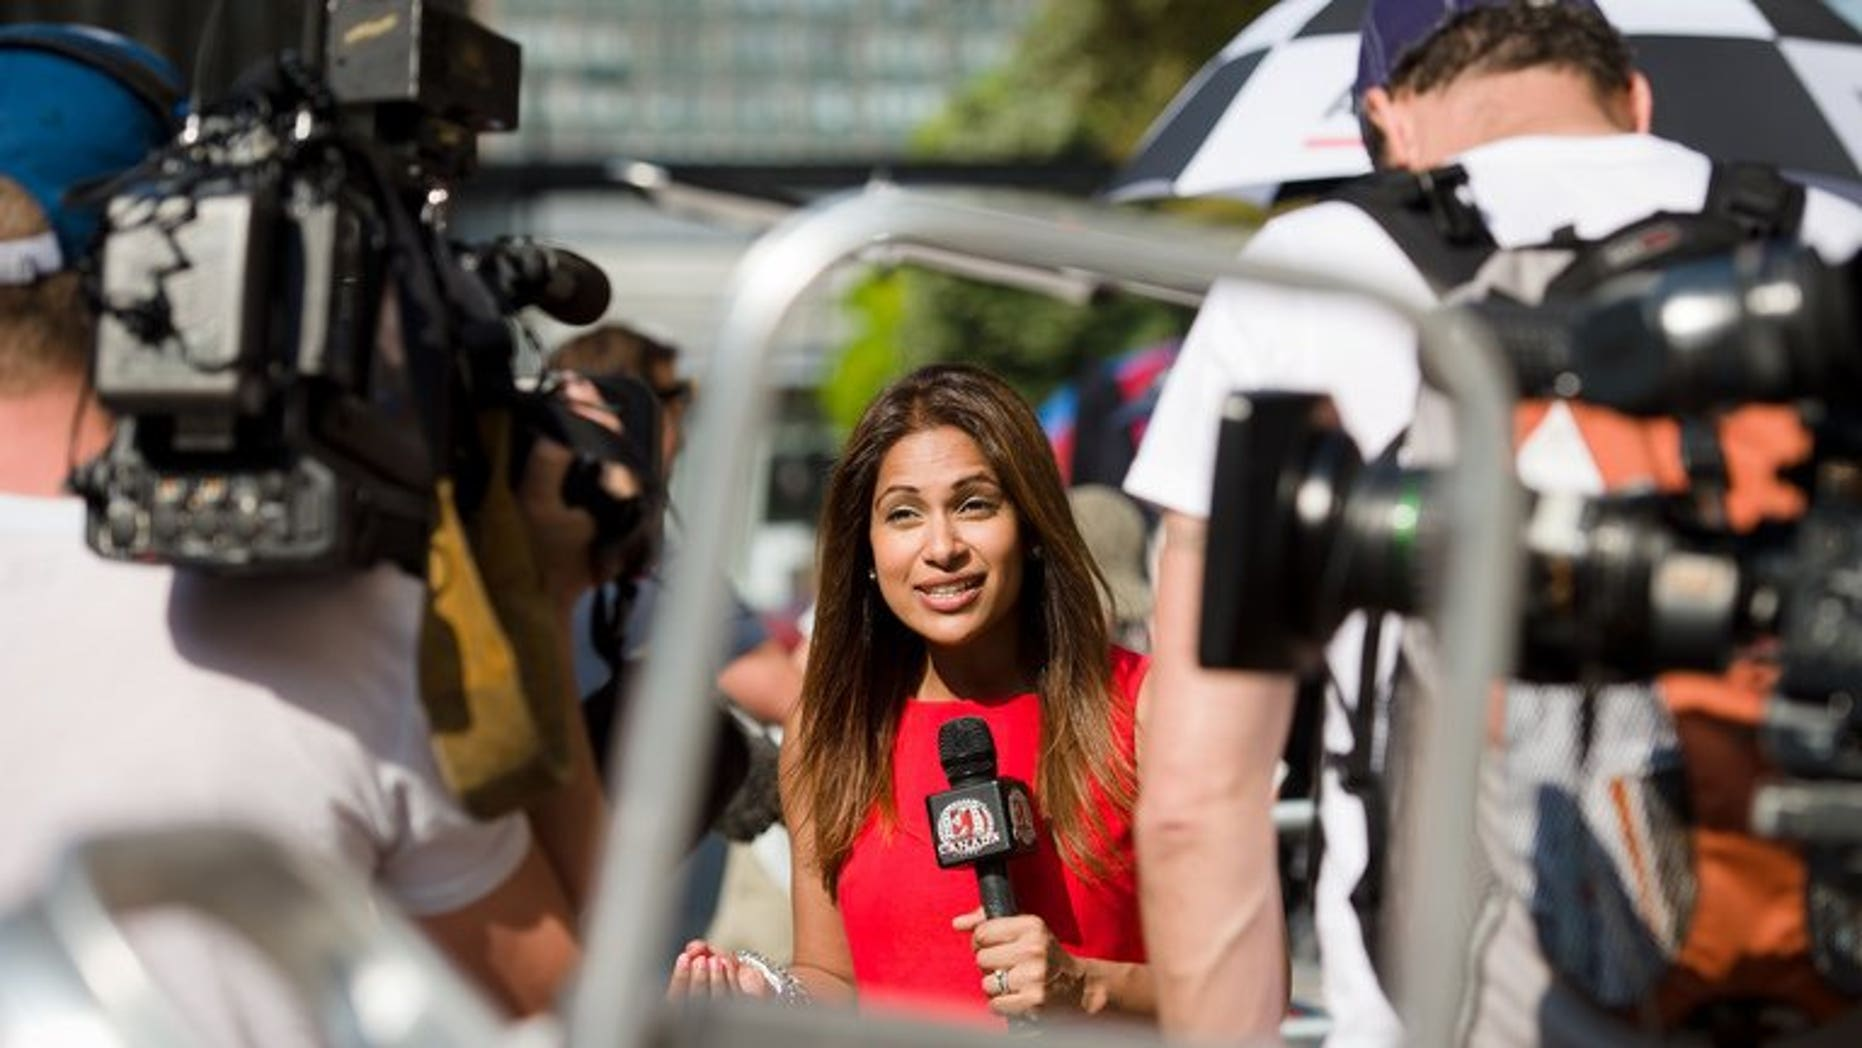 A television presenter records a piece to camera outside the Lindo Wing of St Mary's Hospital in London, on July 17, 2013. After more than two weeks camped outside St Mary's Hospital in London, the media waiting for Prince William's wife Catherine to give birth are having terrible thoughts -- what if they are in the wrong place?